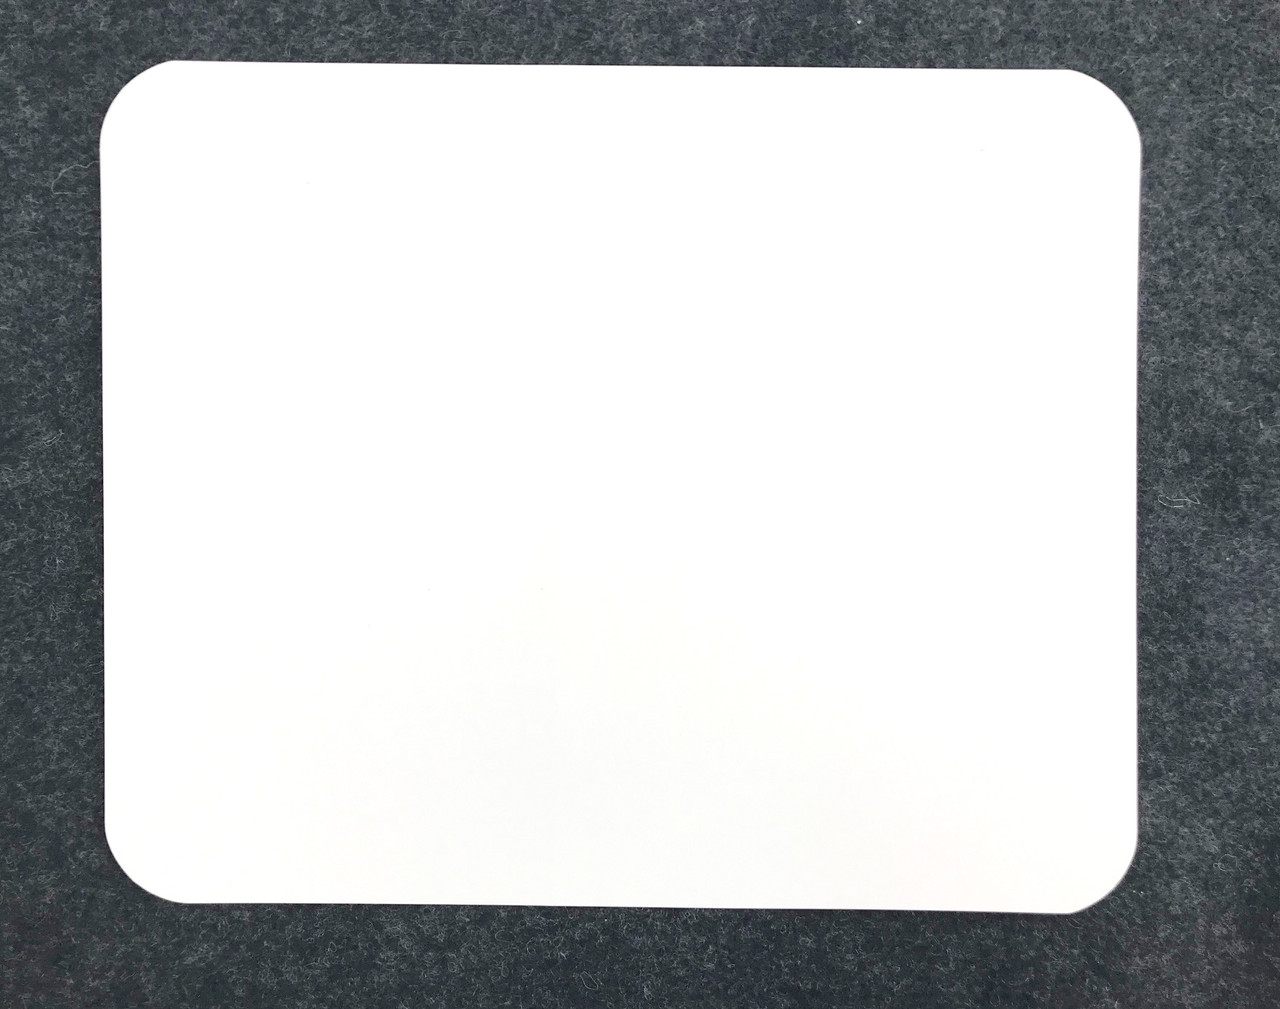 White Stick-On Number Panel